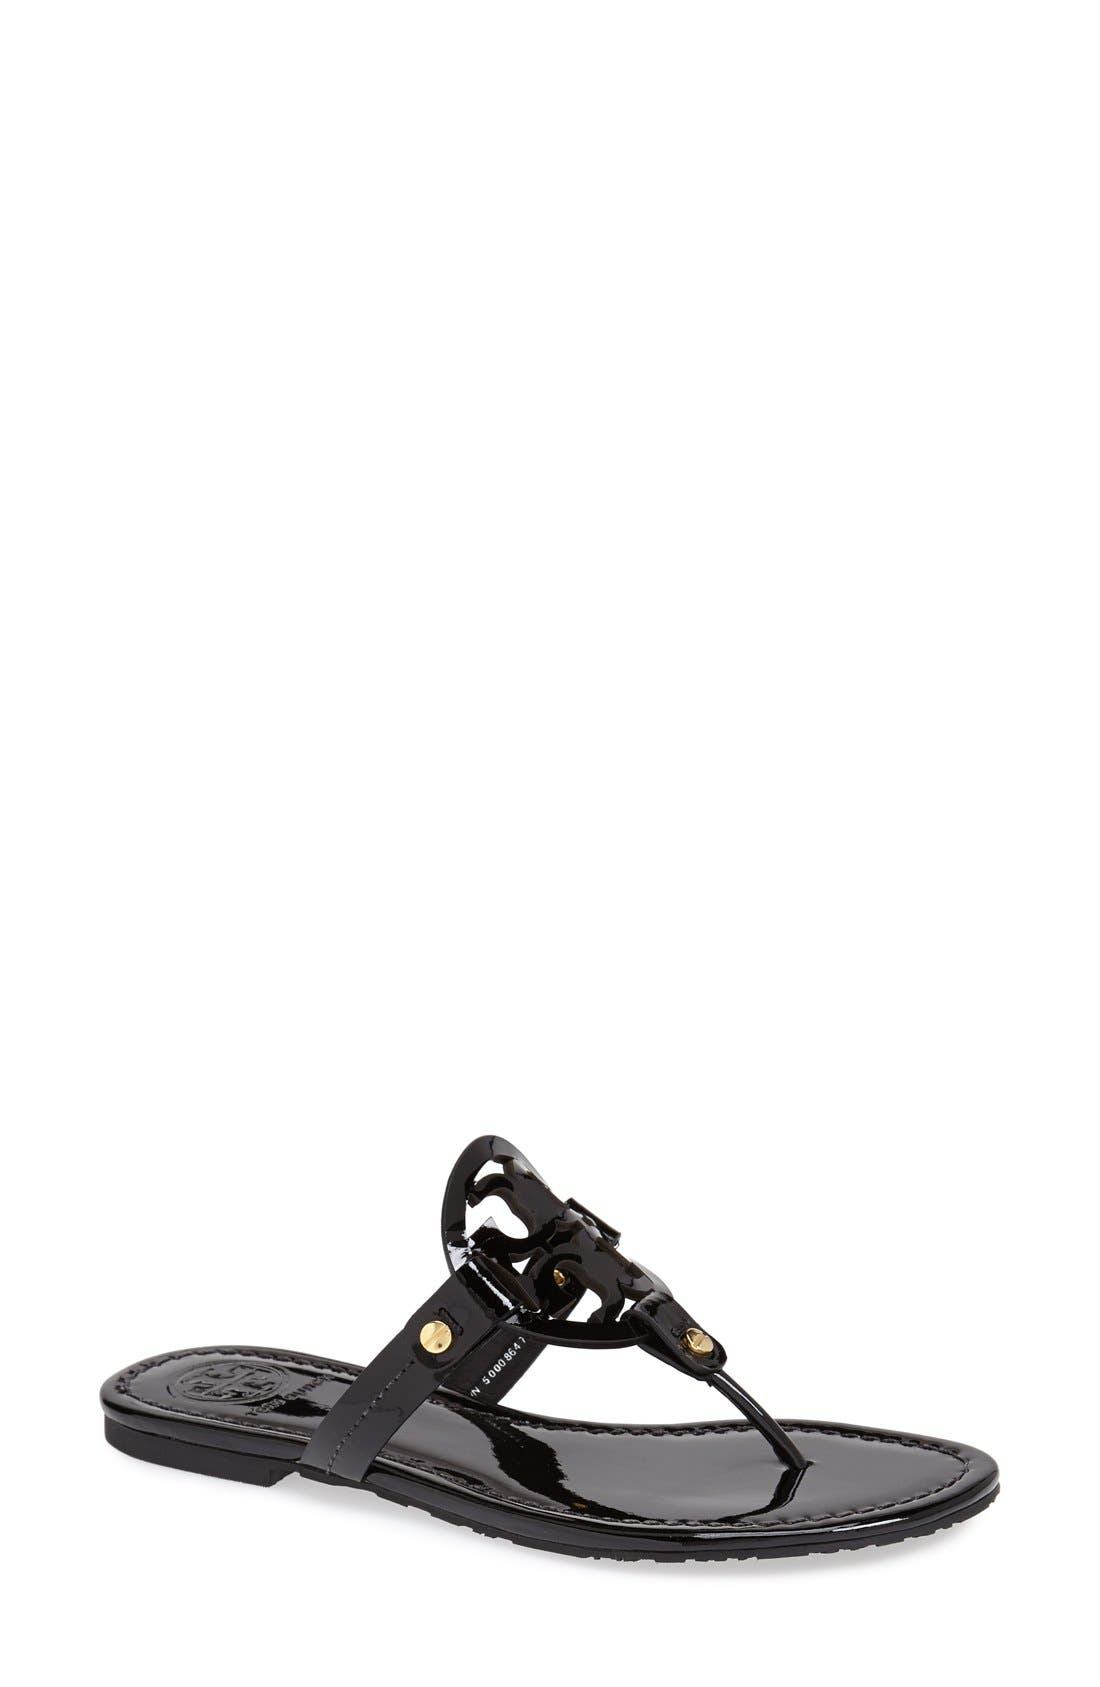 'Miller' Flip Flop,                         Main,                         color, BLACK PATENT